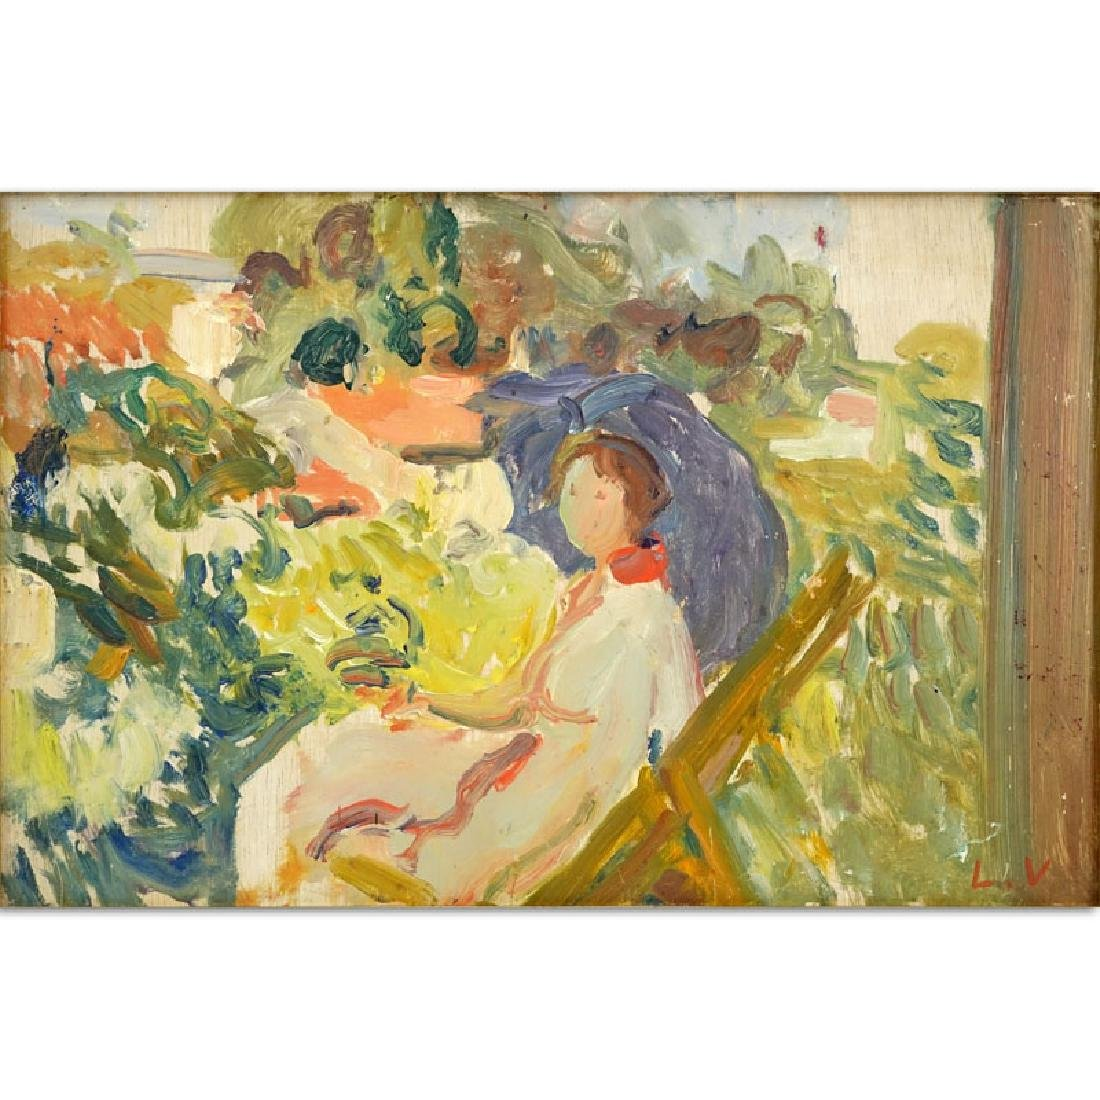 "Possibly: Louis Valtat (1869-1952) Oil on panel ""Girl"